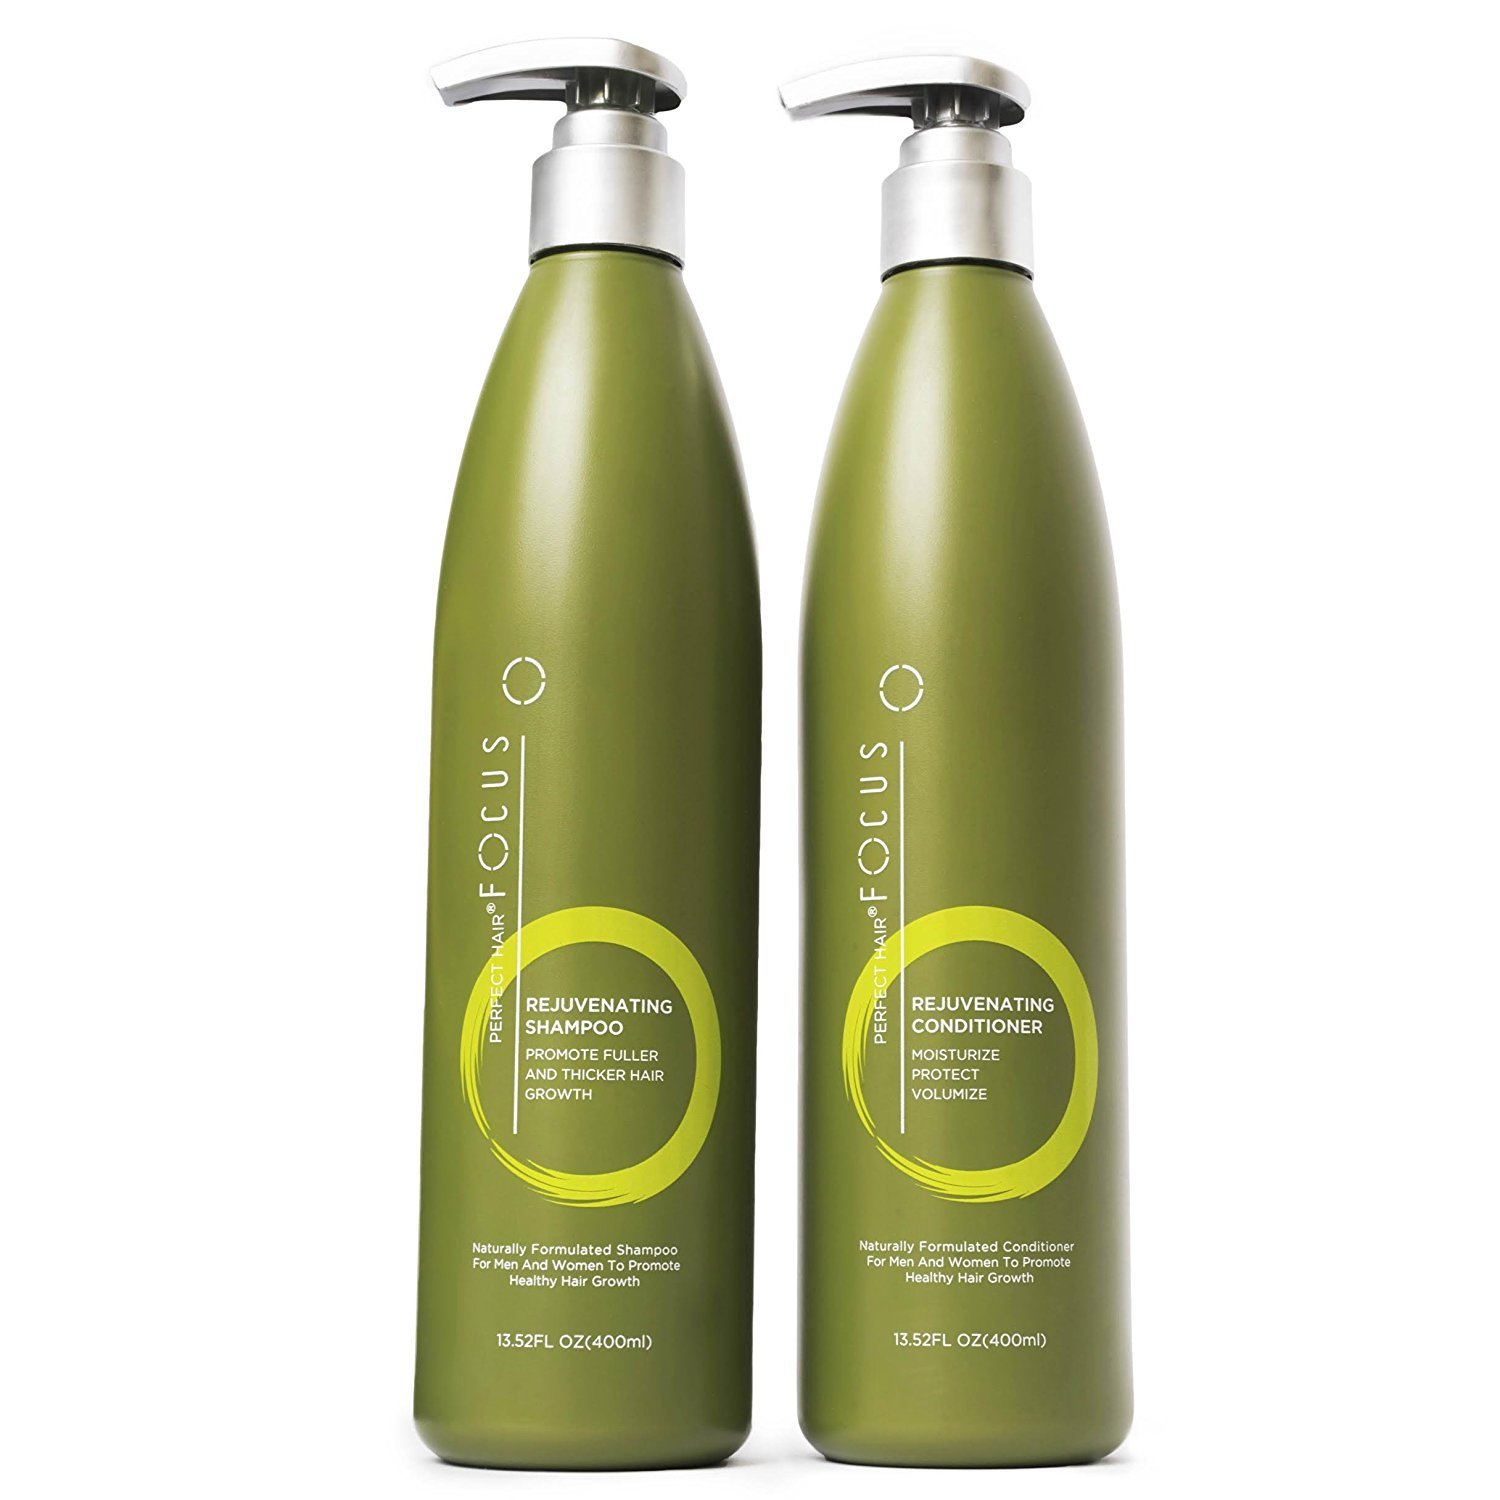 Natural Shampoo and Conditioner - Paraben and Sulfate Free Infused with Jojoba, Coconut, Argan Oil and Biotin - Color Safe Formula Promotes Hair Growth - Includes Pump - 13.5 ounce (1 Pack) by Perfect Hair